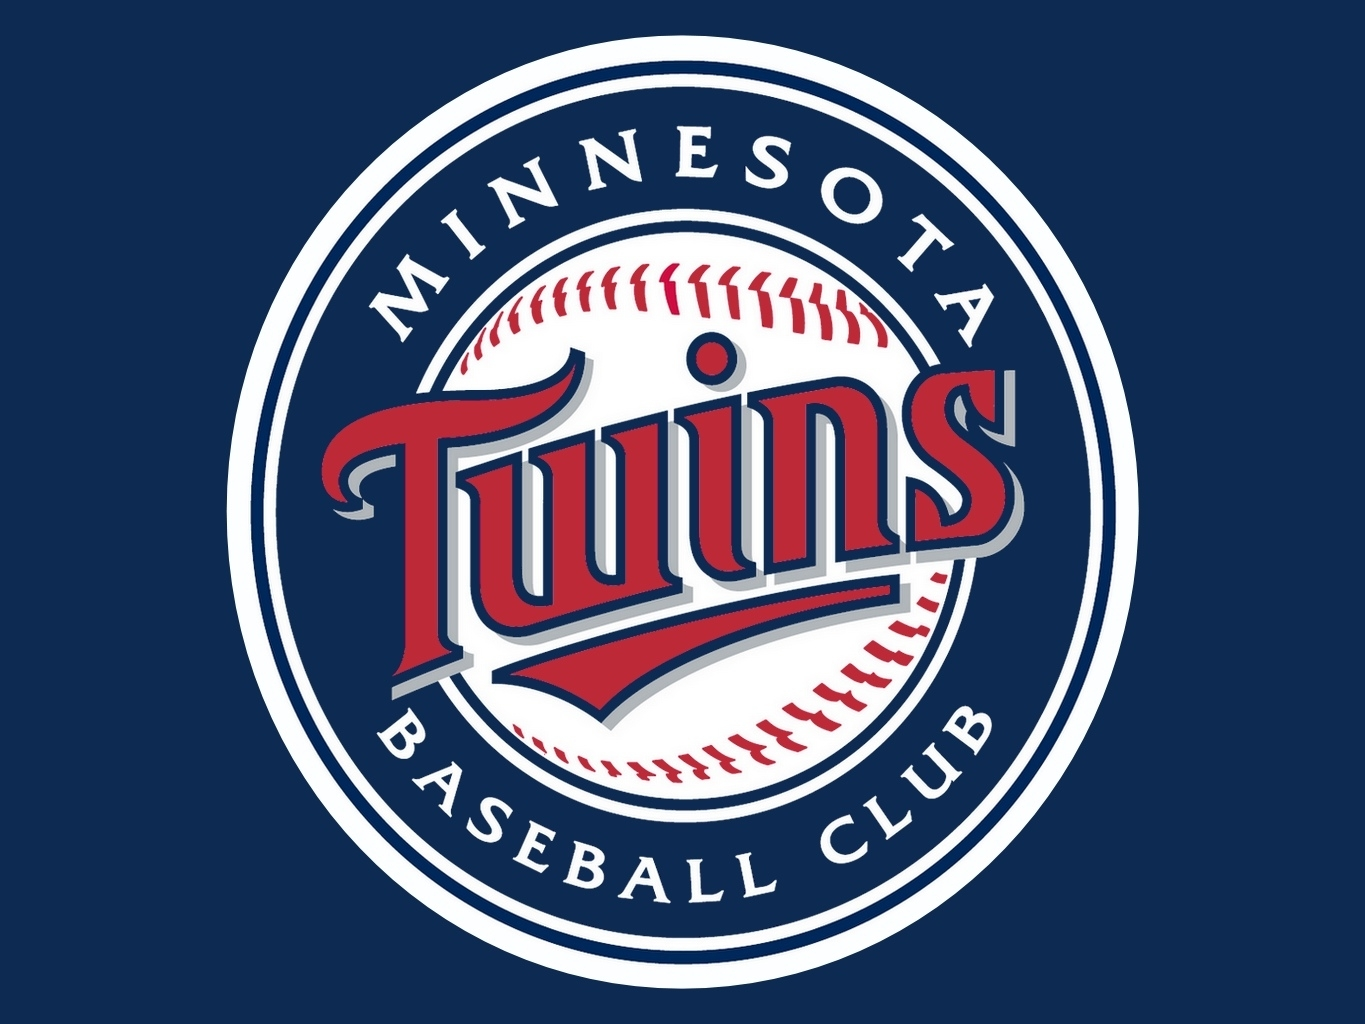 Twins clinch series versus Baltimore after strong outing from Ervin Santana